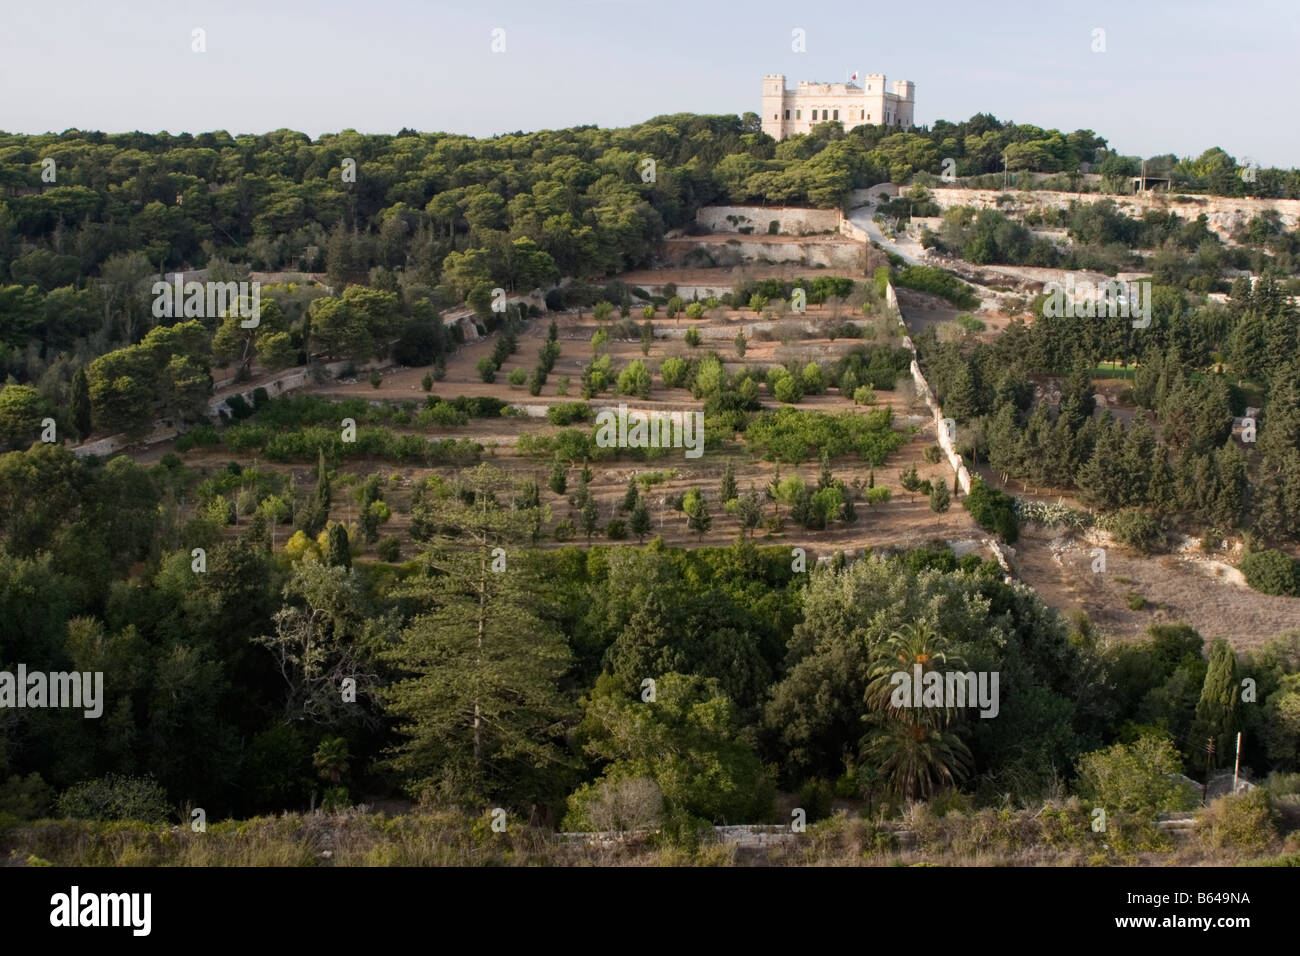 Buskett Gardens And Verdala Palace In Malta Stock Photo